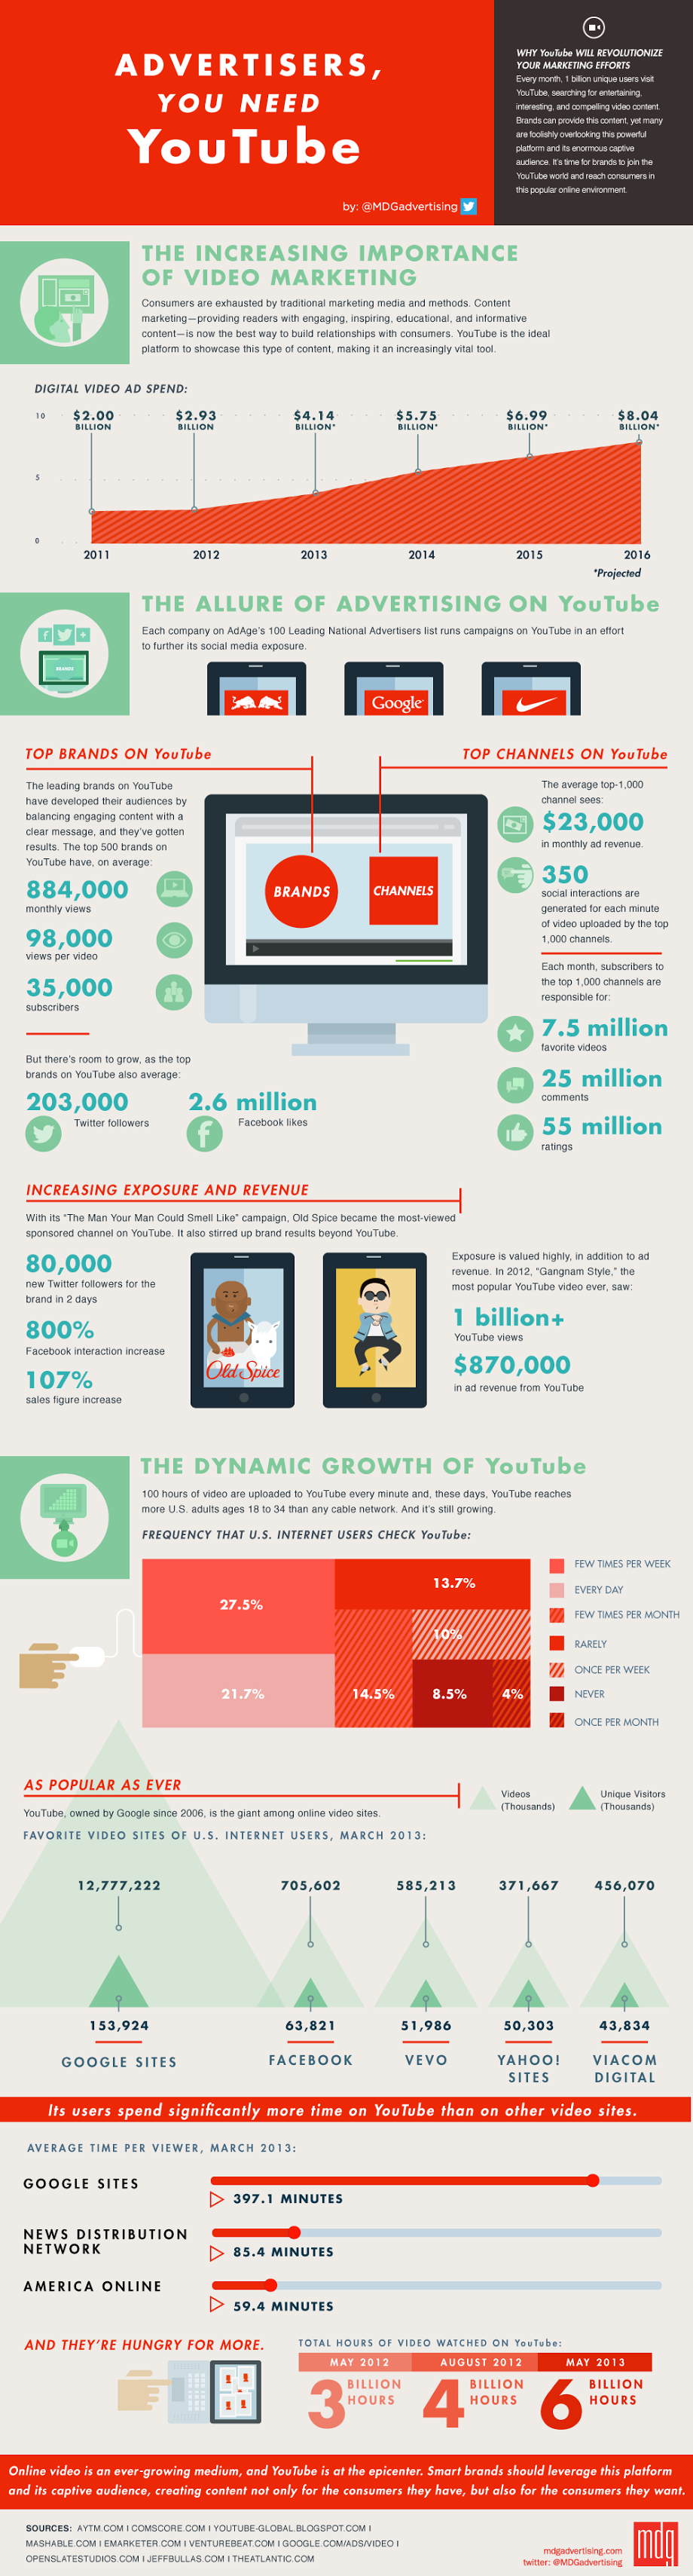 Video marketing and why advertisers need YouTube